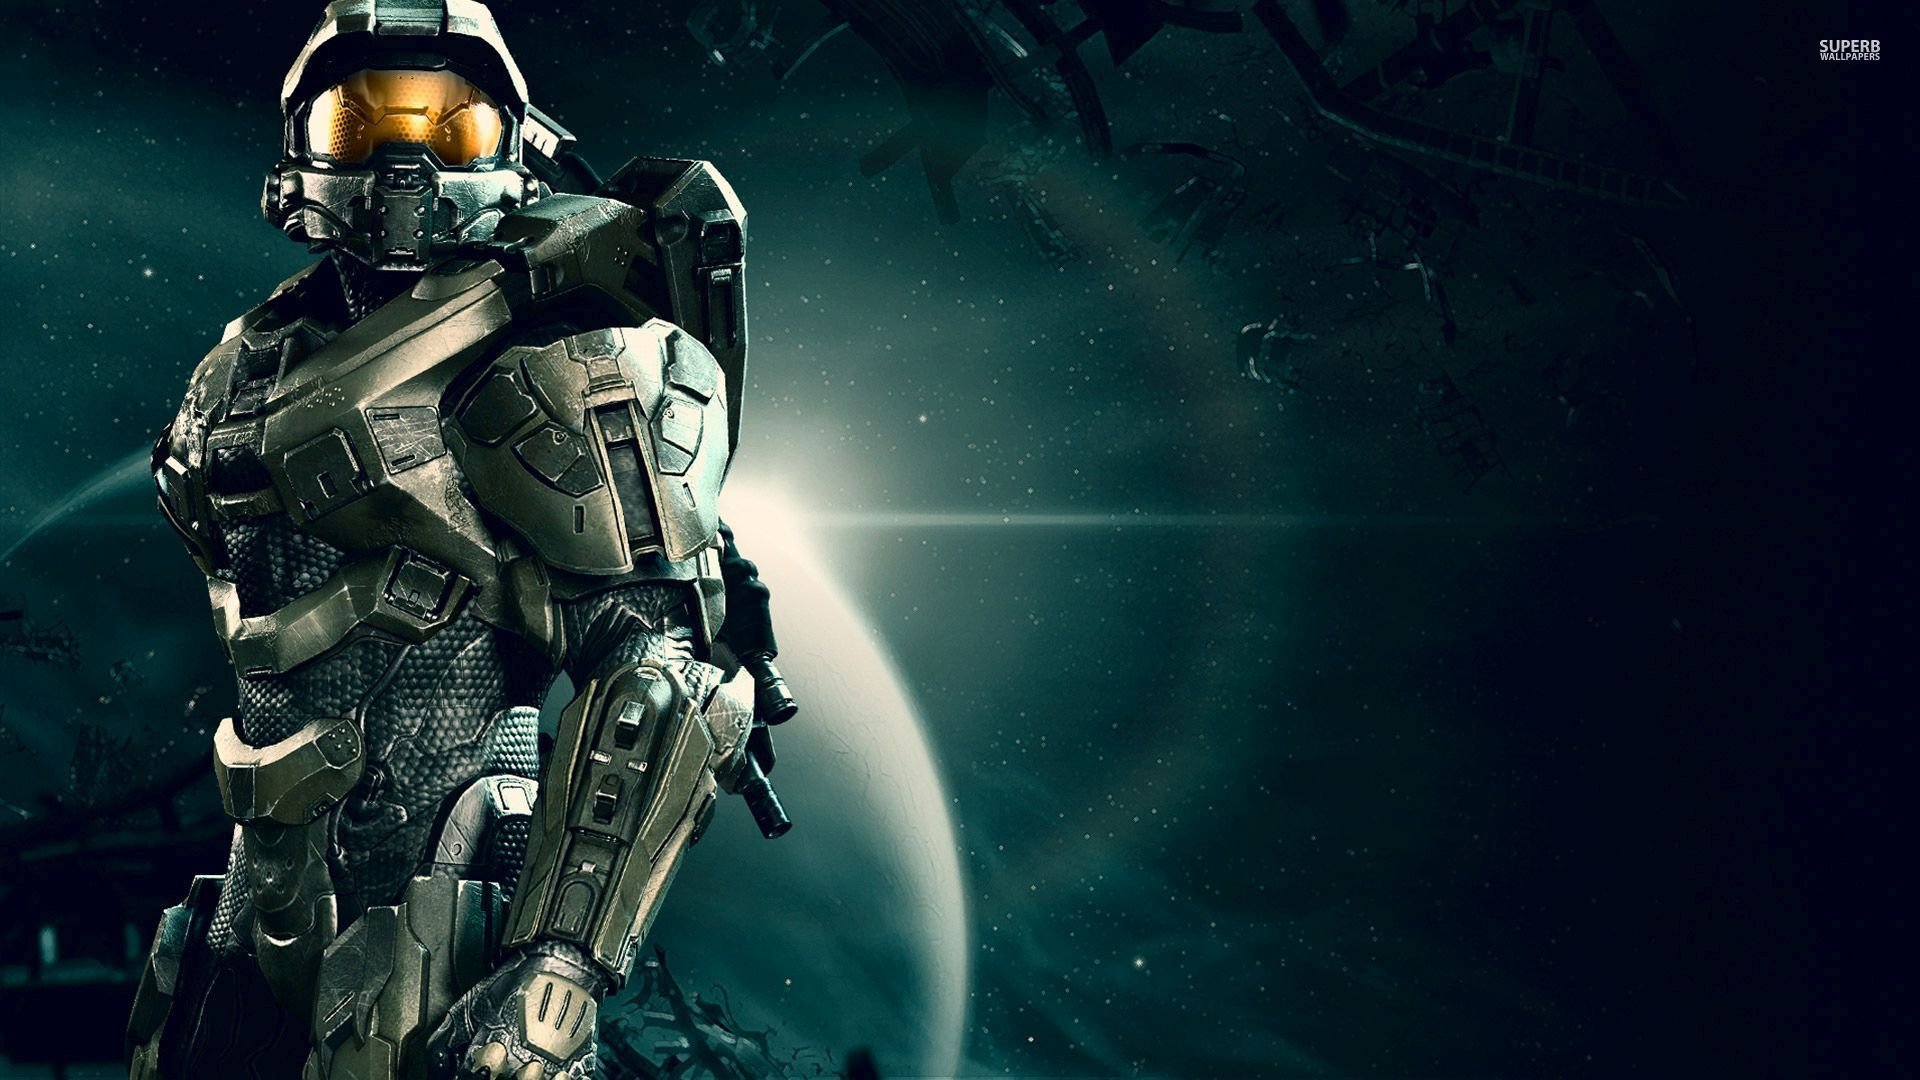 Master Chief Wallpaper 1920x1080 52541 Adorable Wallpapers